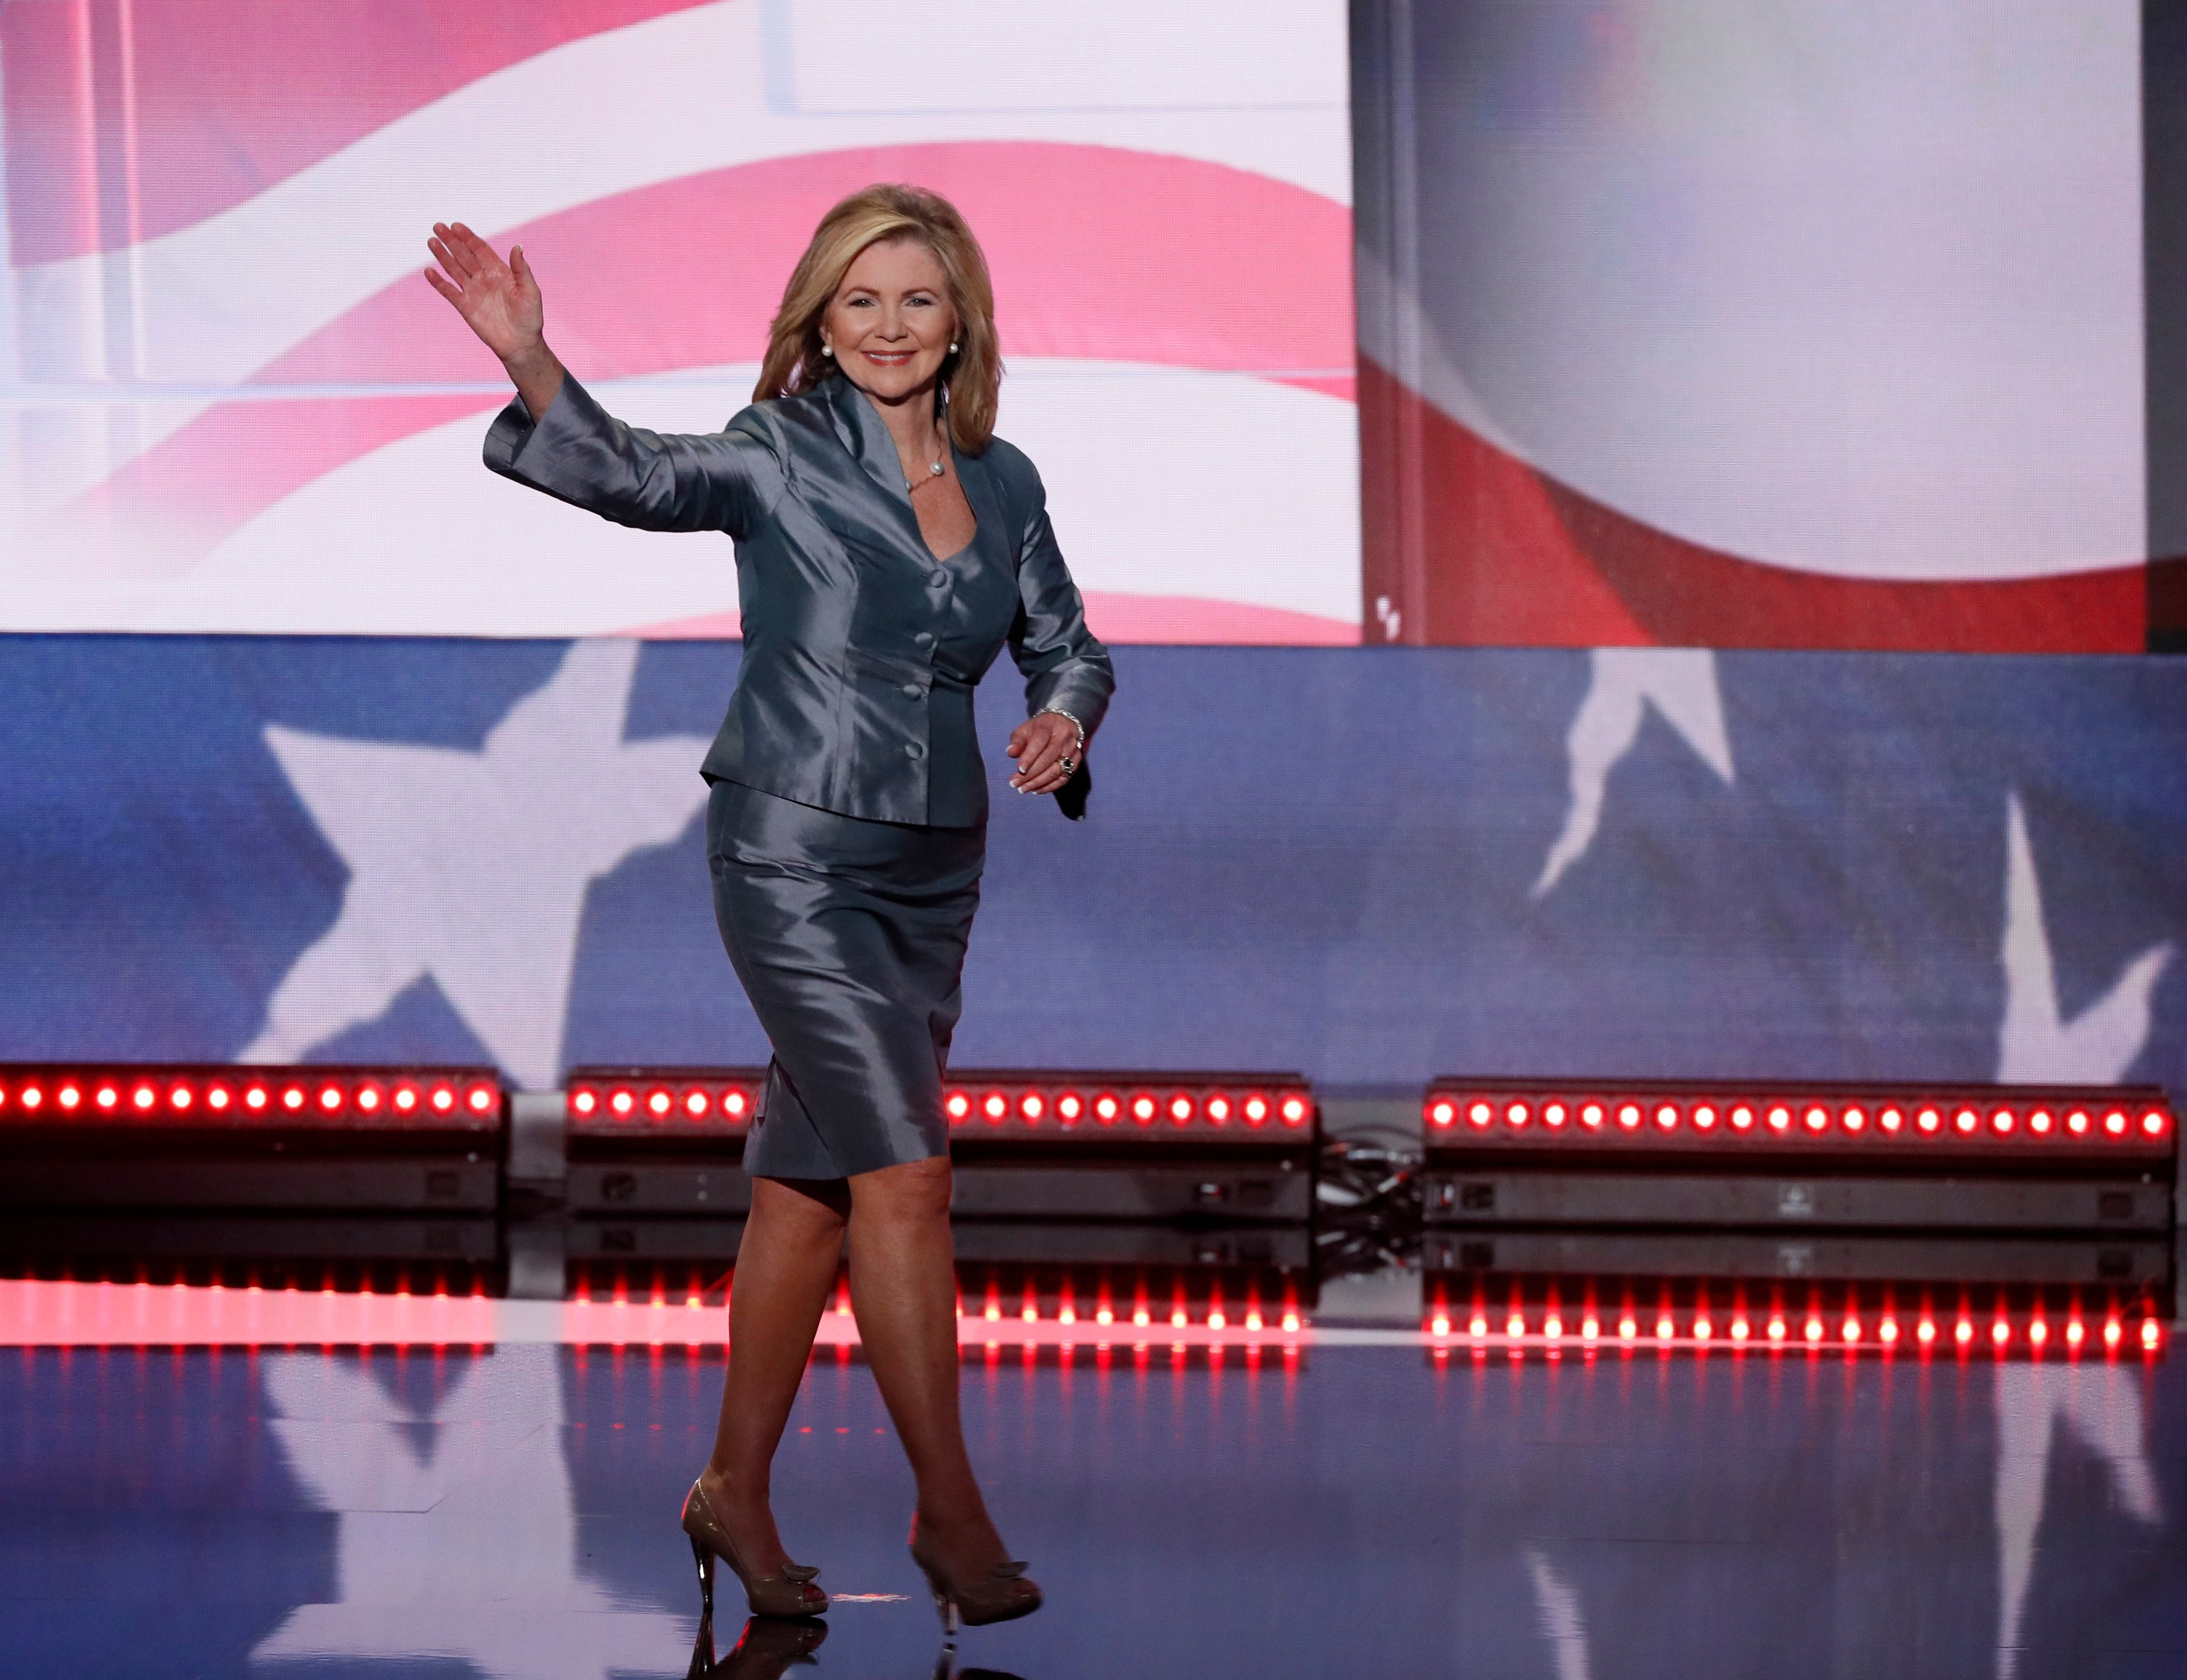 Representative Marsha Blackburn (R-TN) takes the stage to speak during the final day of the Republican National Convention in Cleveland, Ohio, U.S. July 21, 2016. REUTERS/Mike Segar